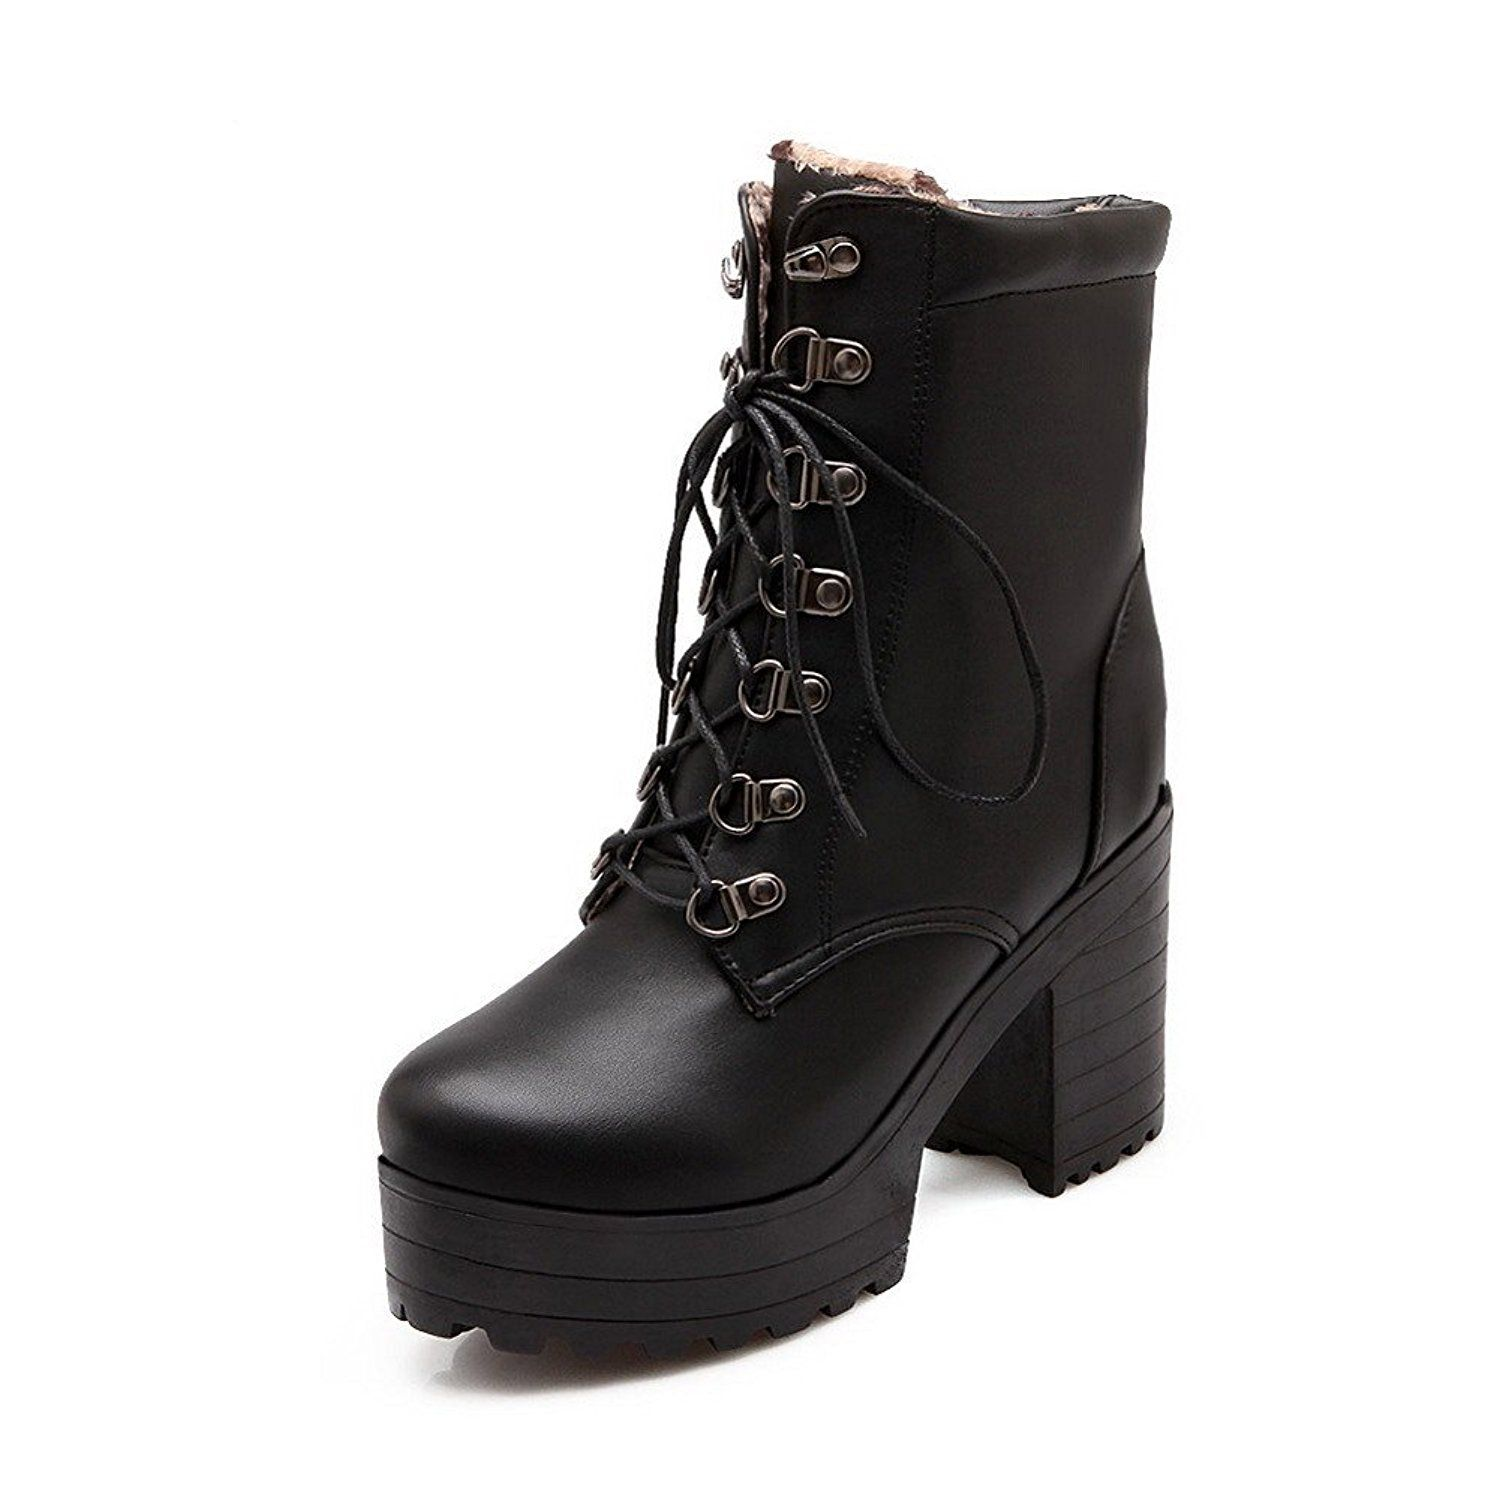 Women's High-Heels Soft Material Low-Top Solid Lace-Up Boots